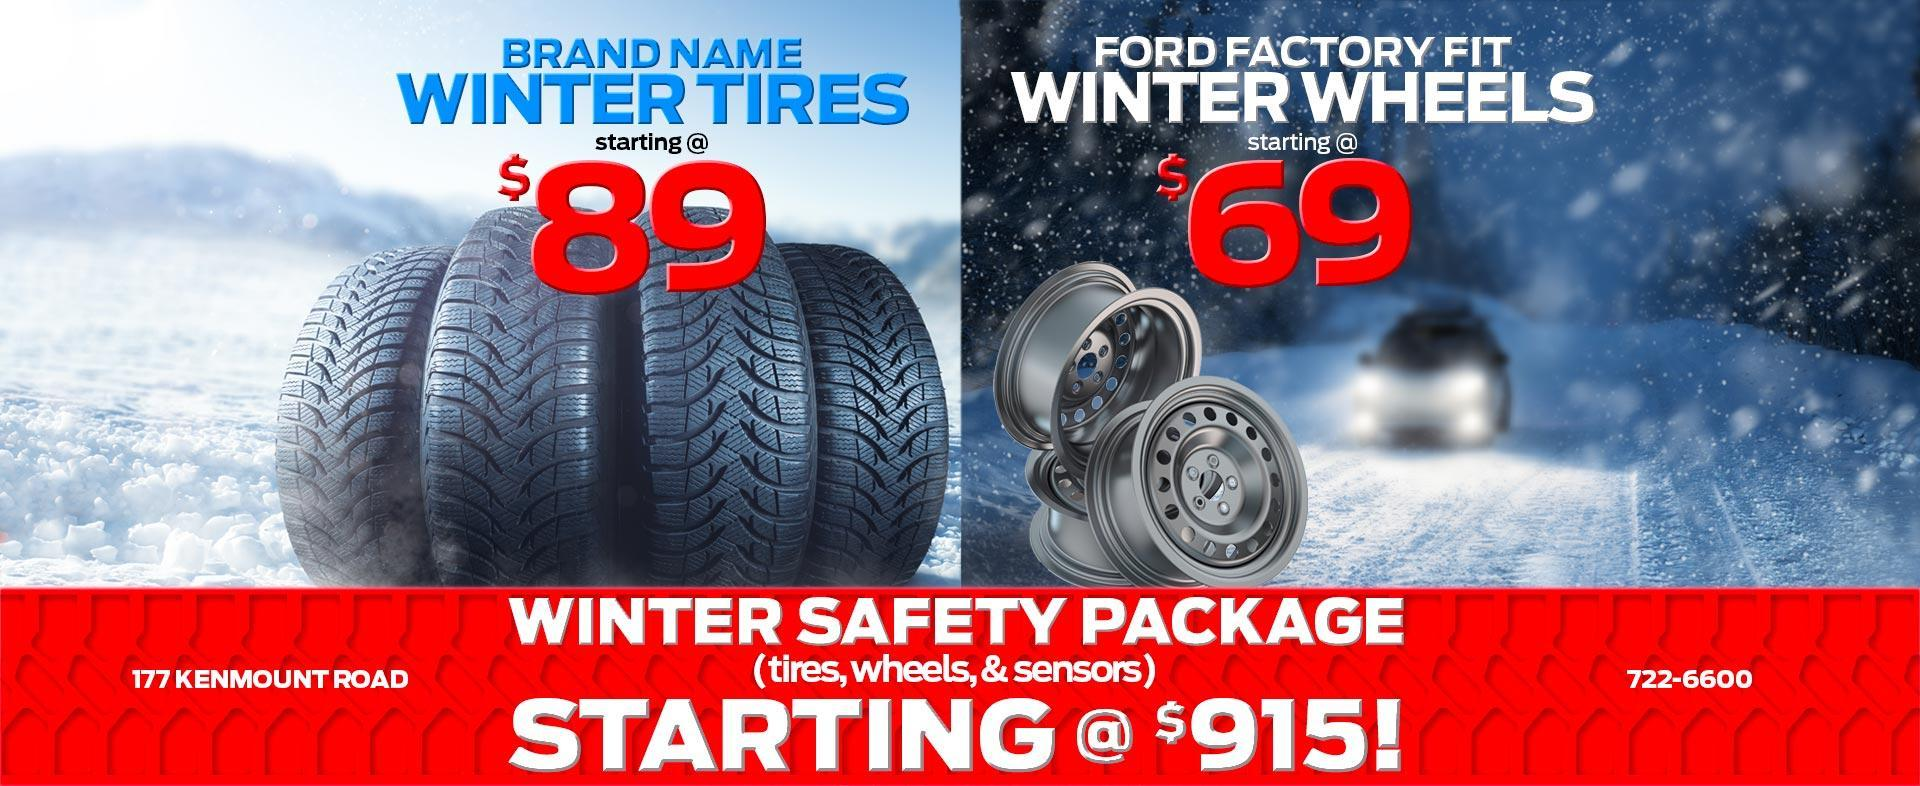 Winter tires, wheels, and safety packages at amazing deals! 722-6600. 177 Kenmount Road.